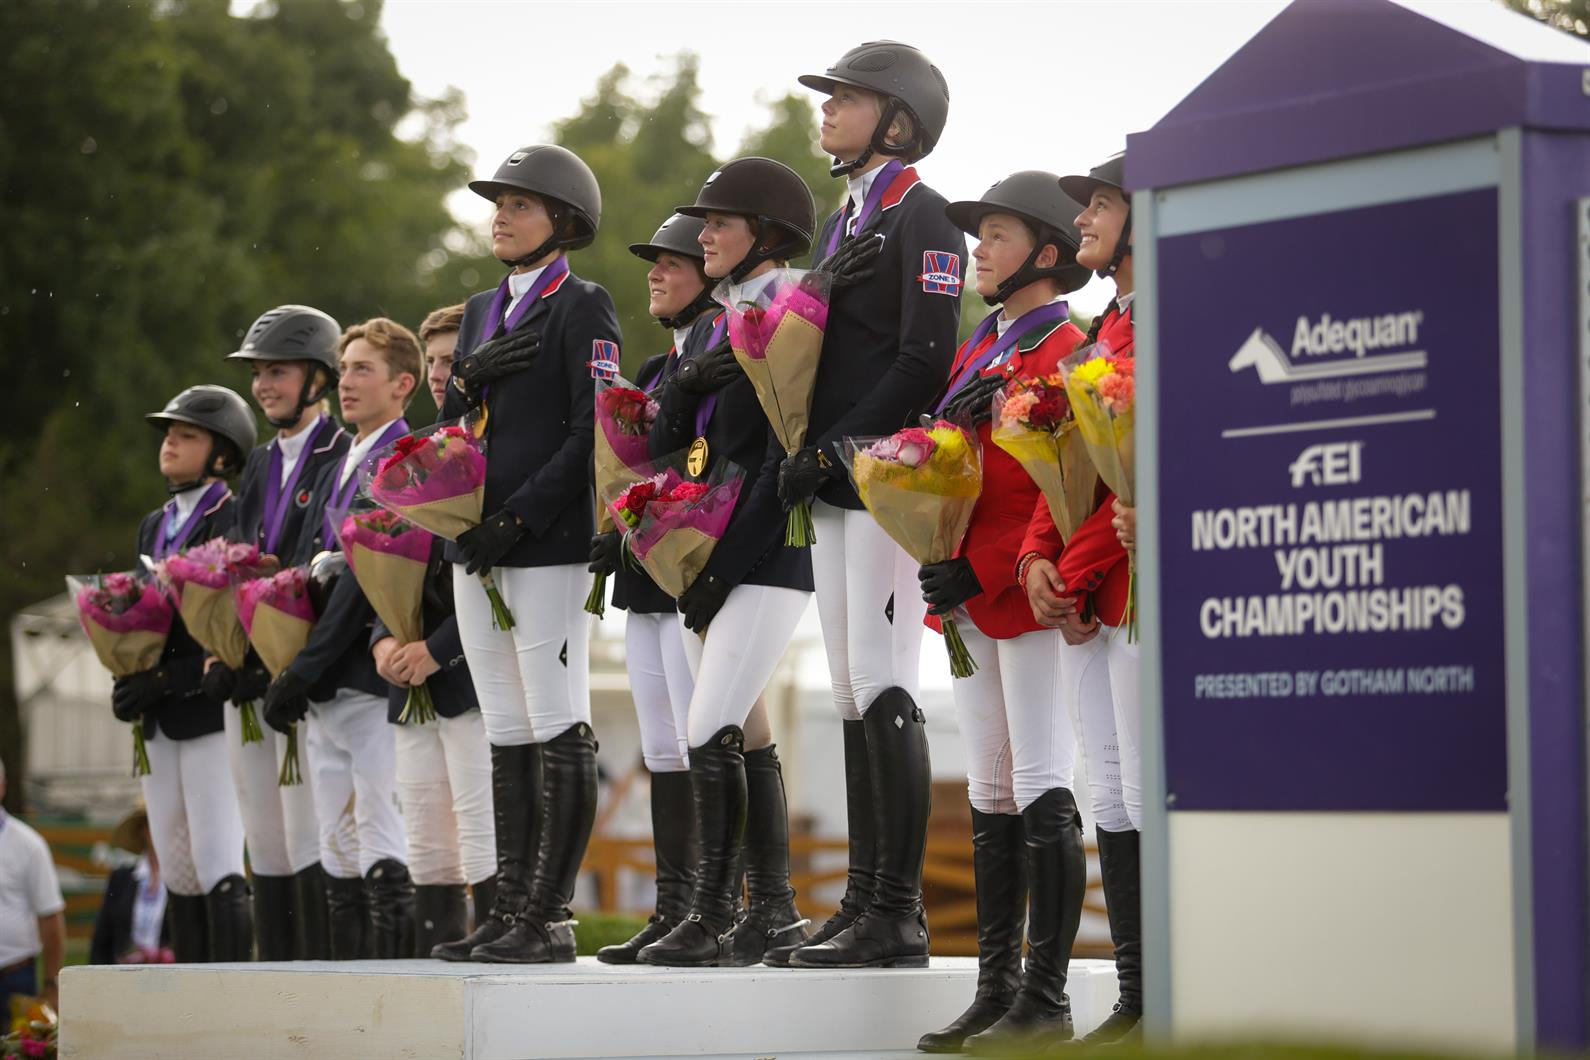 Expressions of Interest Now Open for 2020, 2021, and 2022 FEI North American Youth Championships